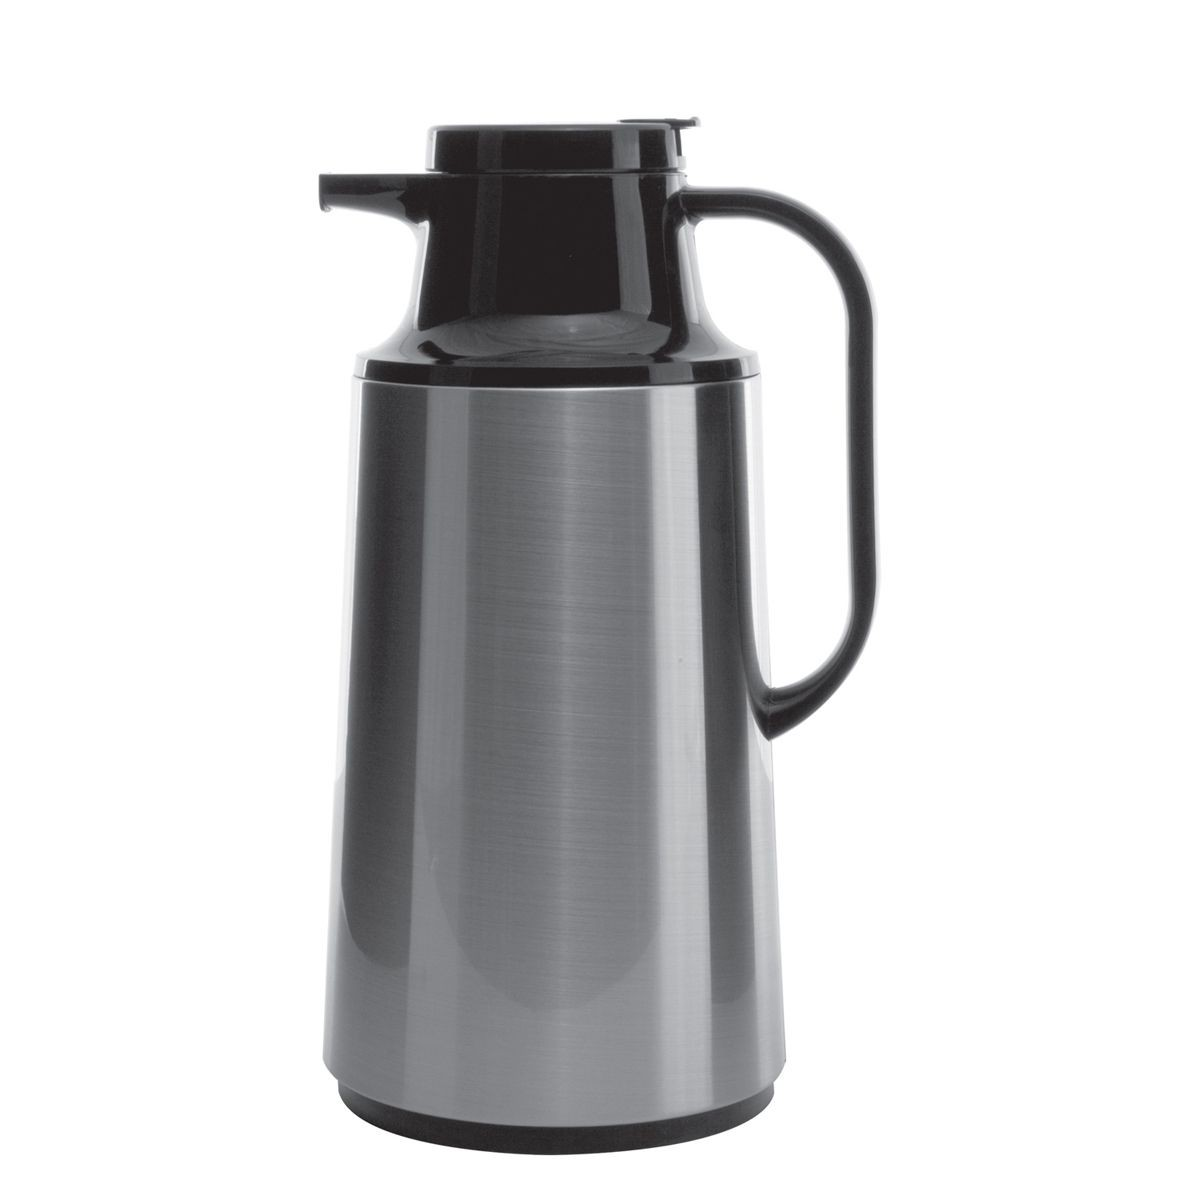 Service Ideas HPS191 Brushed Stainless Coffee Server, 1.9 Liter